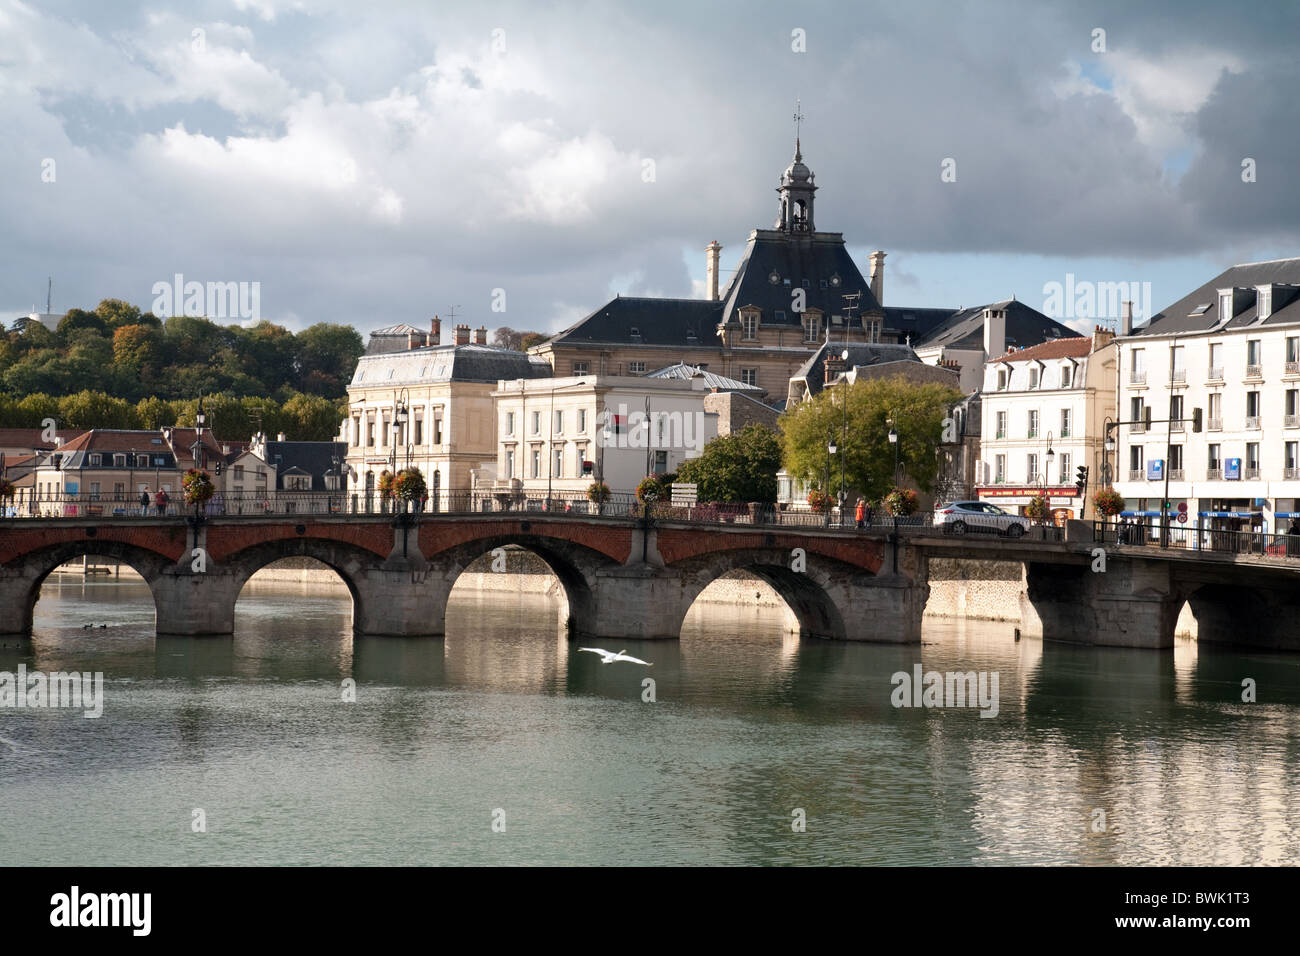 The river Marne in Meaux, Ile de France Northern France - Stock Image